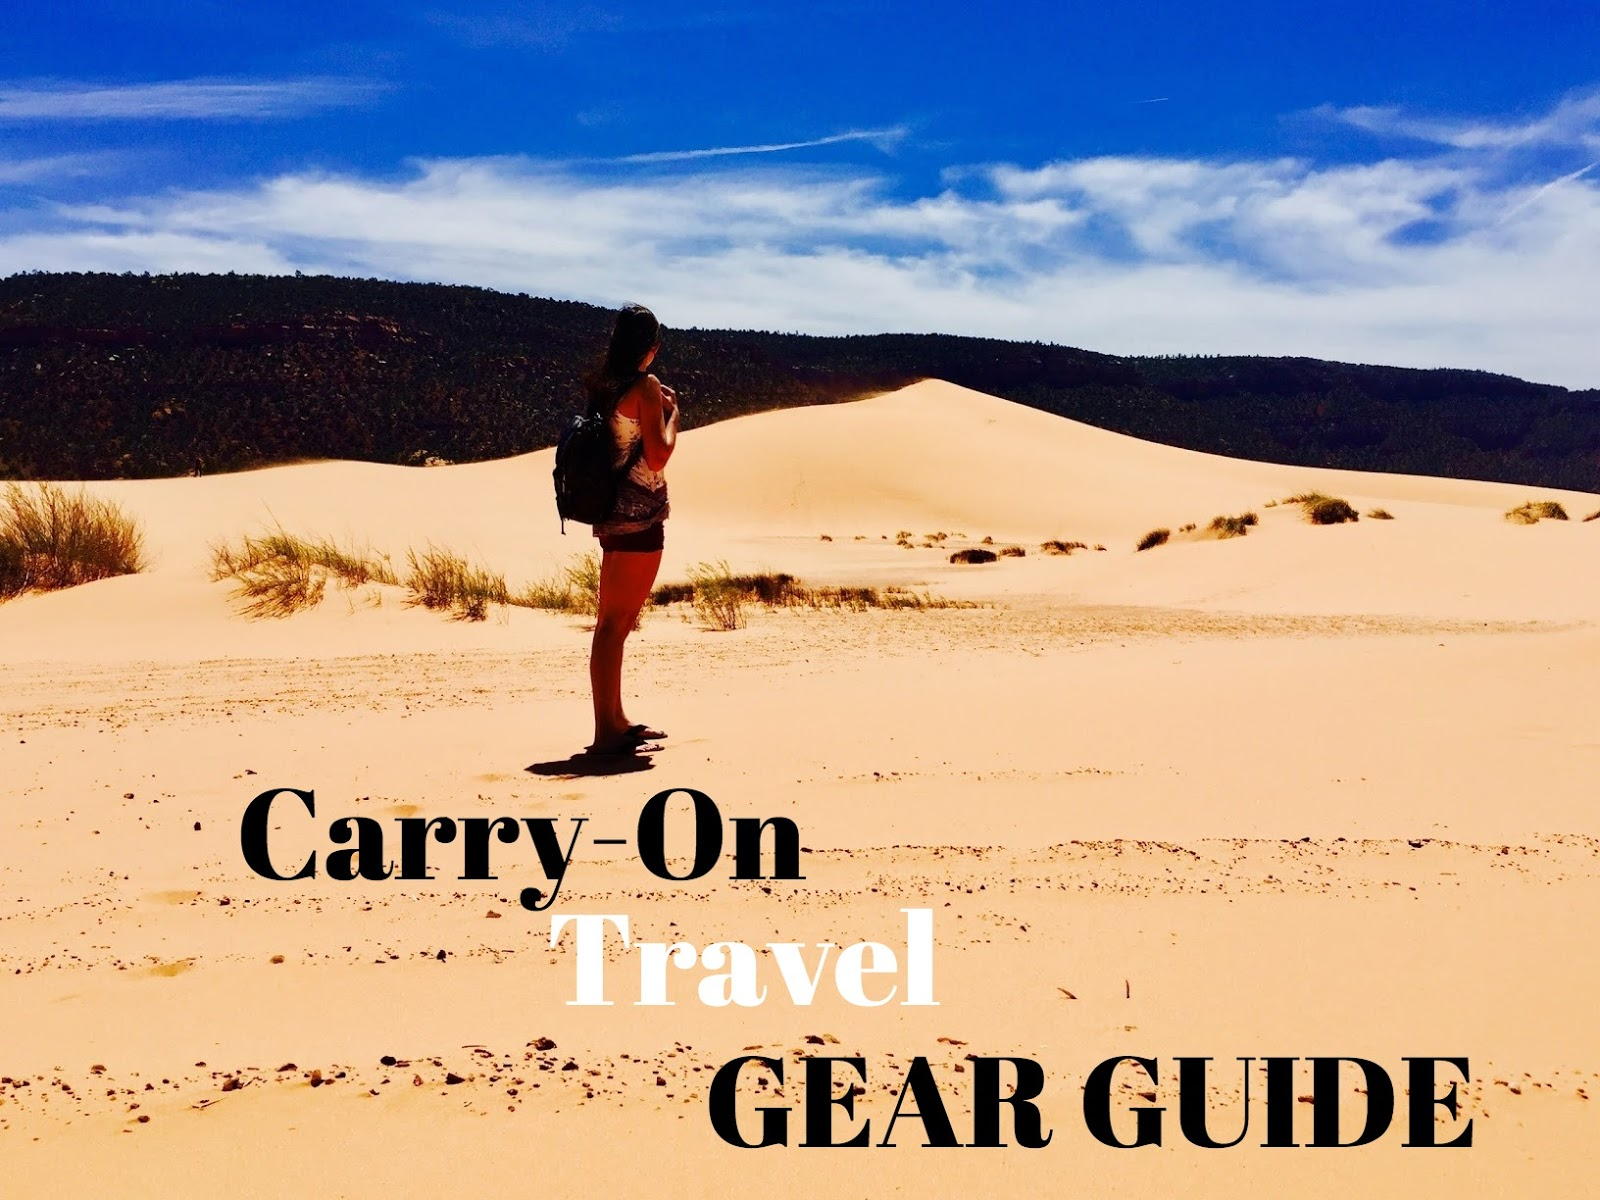 carry on travel guide, travel gear guide, travel guide, what to bring for a carry-on, carry-on, travel, carry on travel, what to pack,